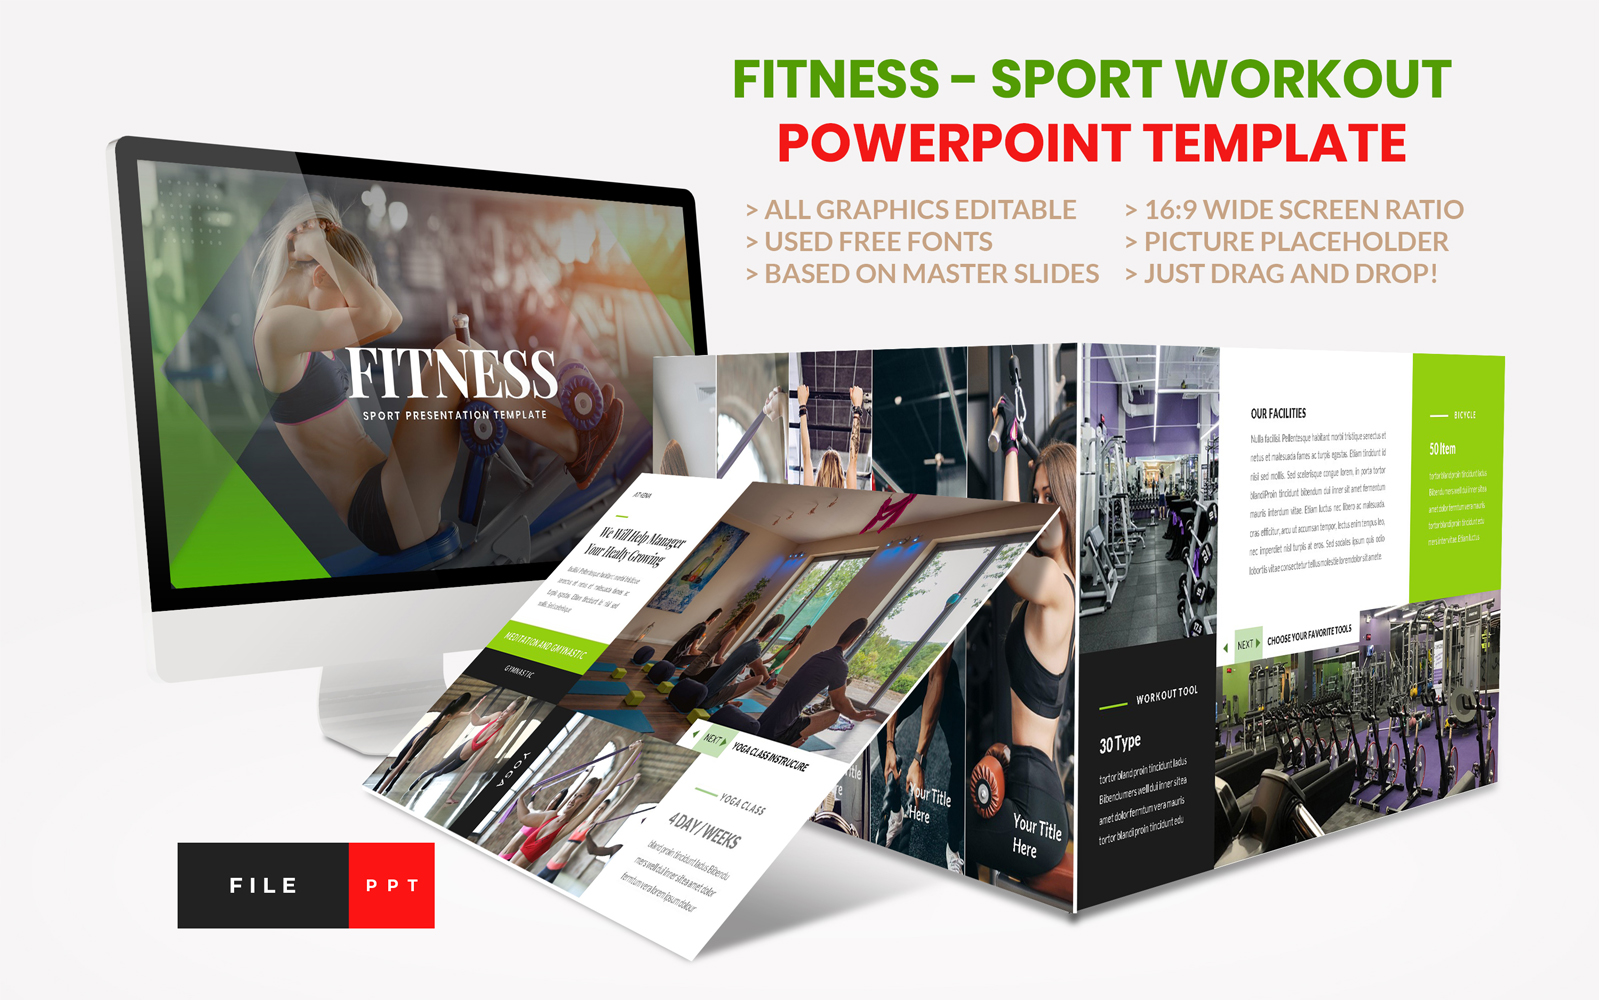 Sport - Fitness Business Workout PowerPoint Template